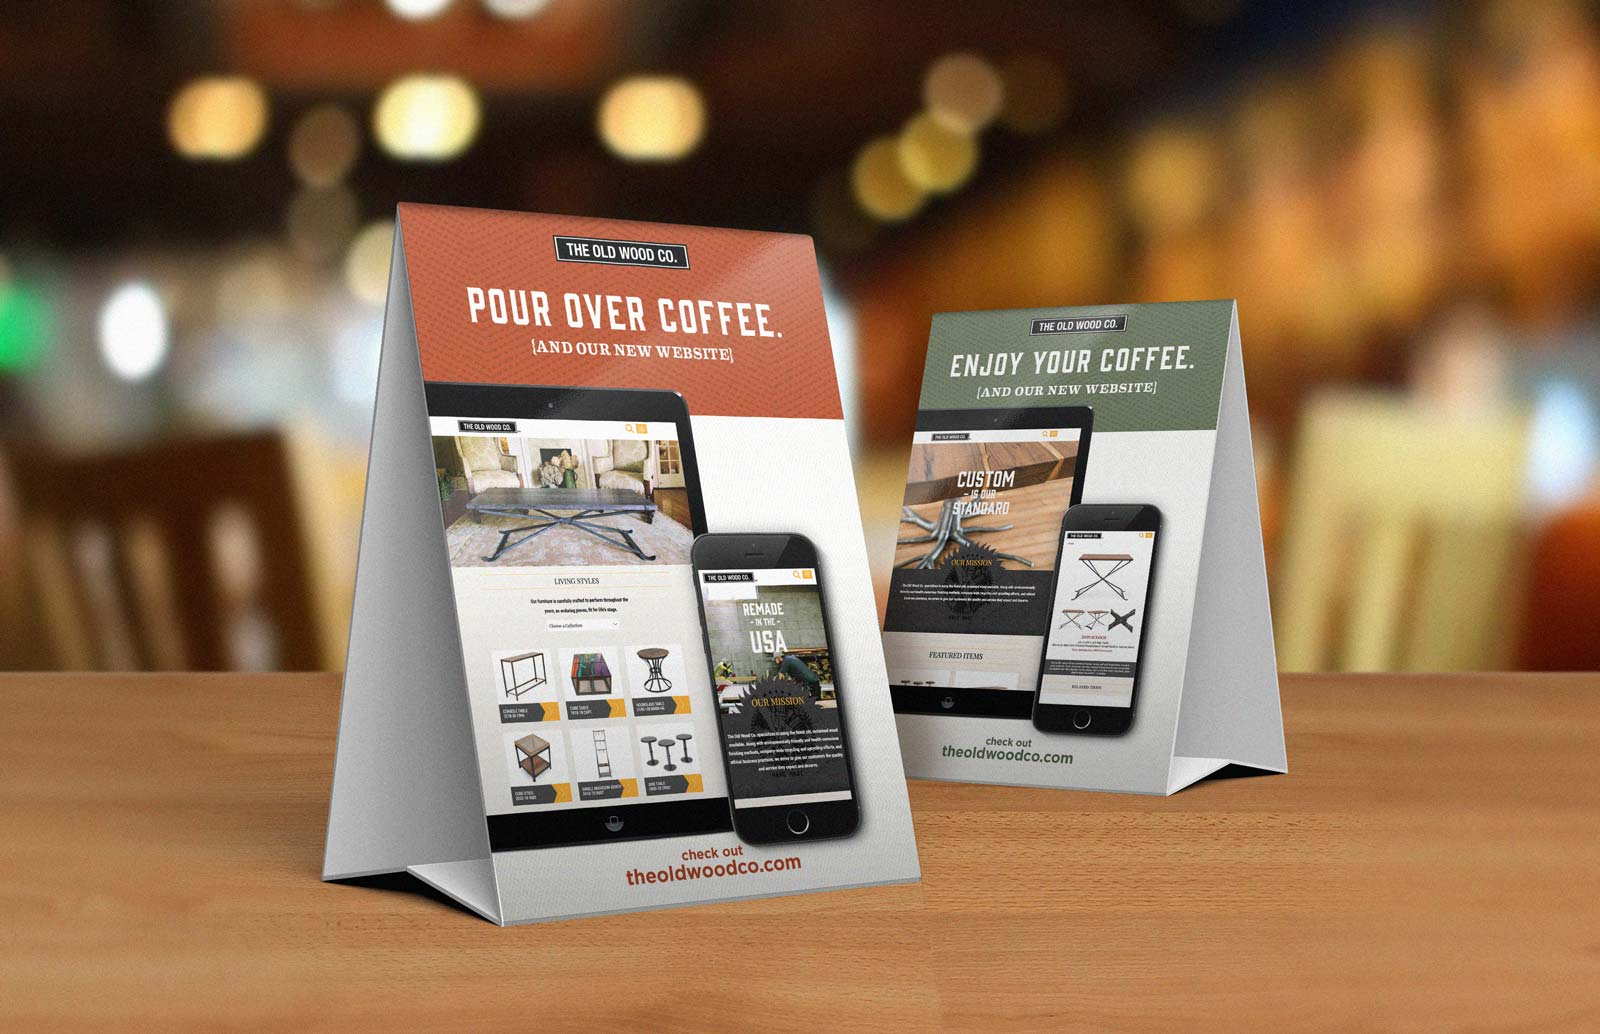 Old Wood Furniture Company table tents for coffee shows iPad and iPhone with website pages